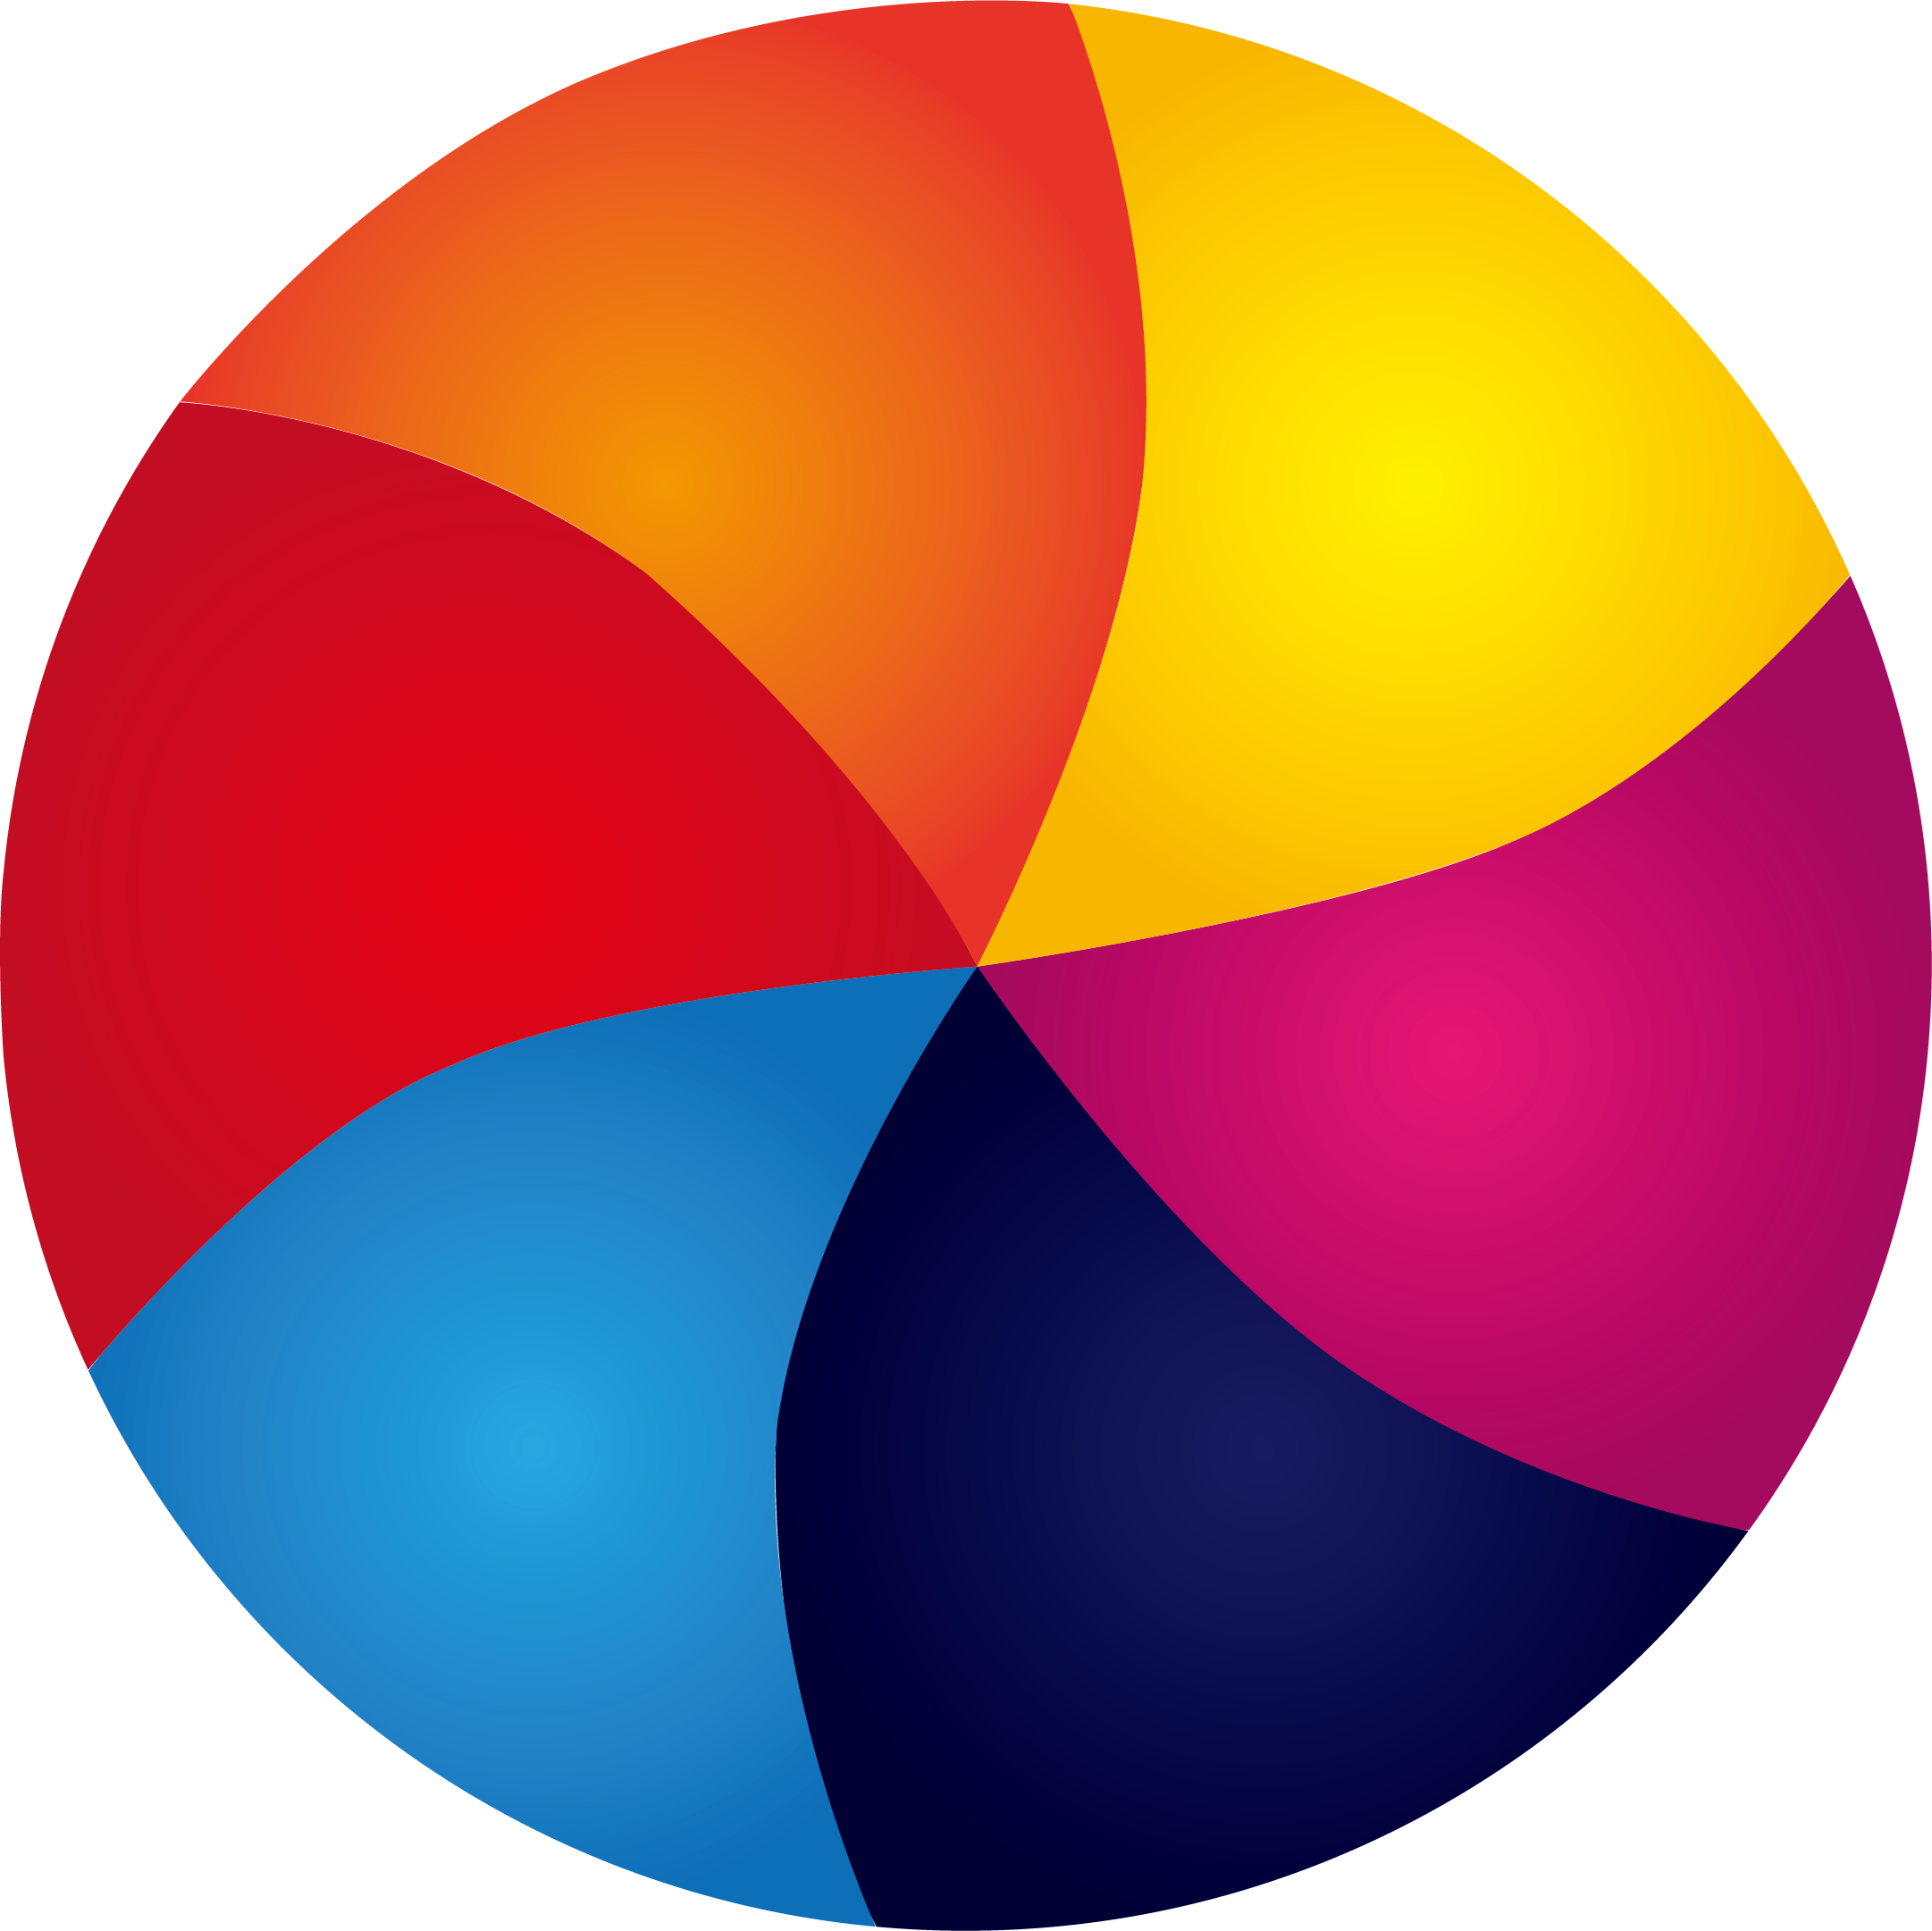 Spin vector circle frame. Spinning colorful transprent png